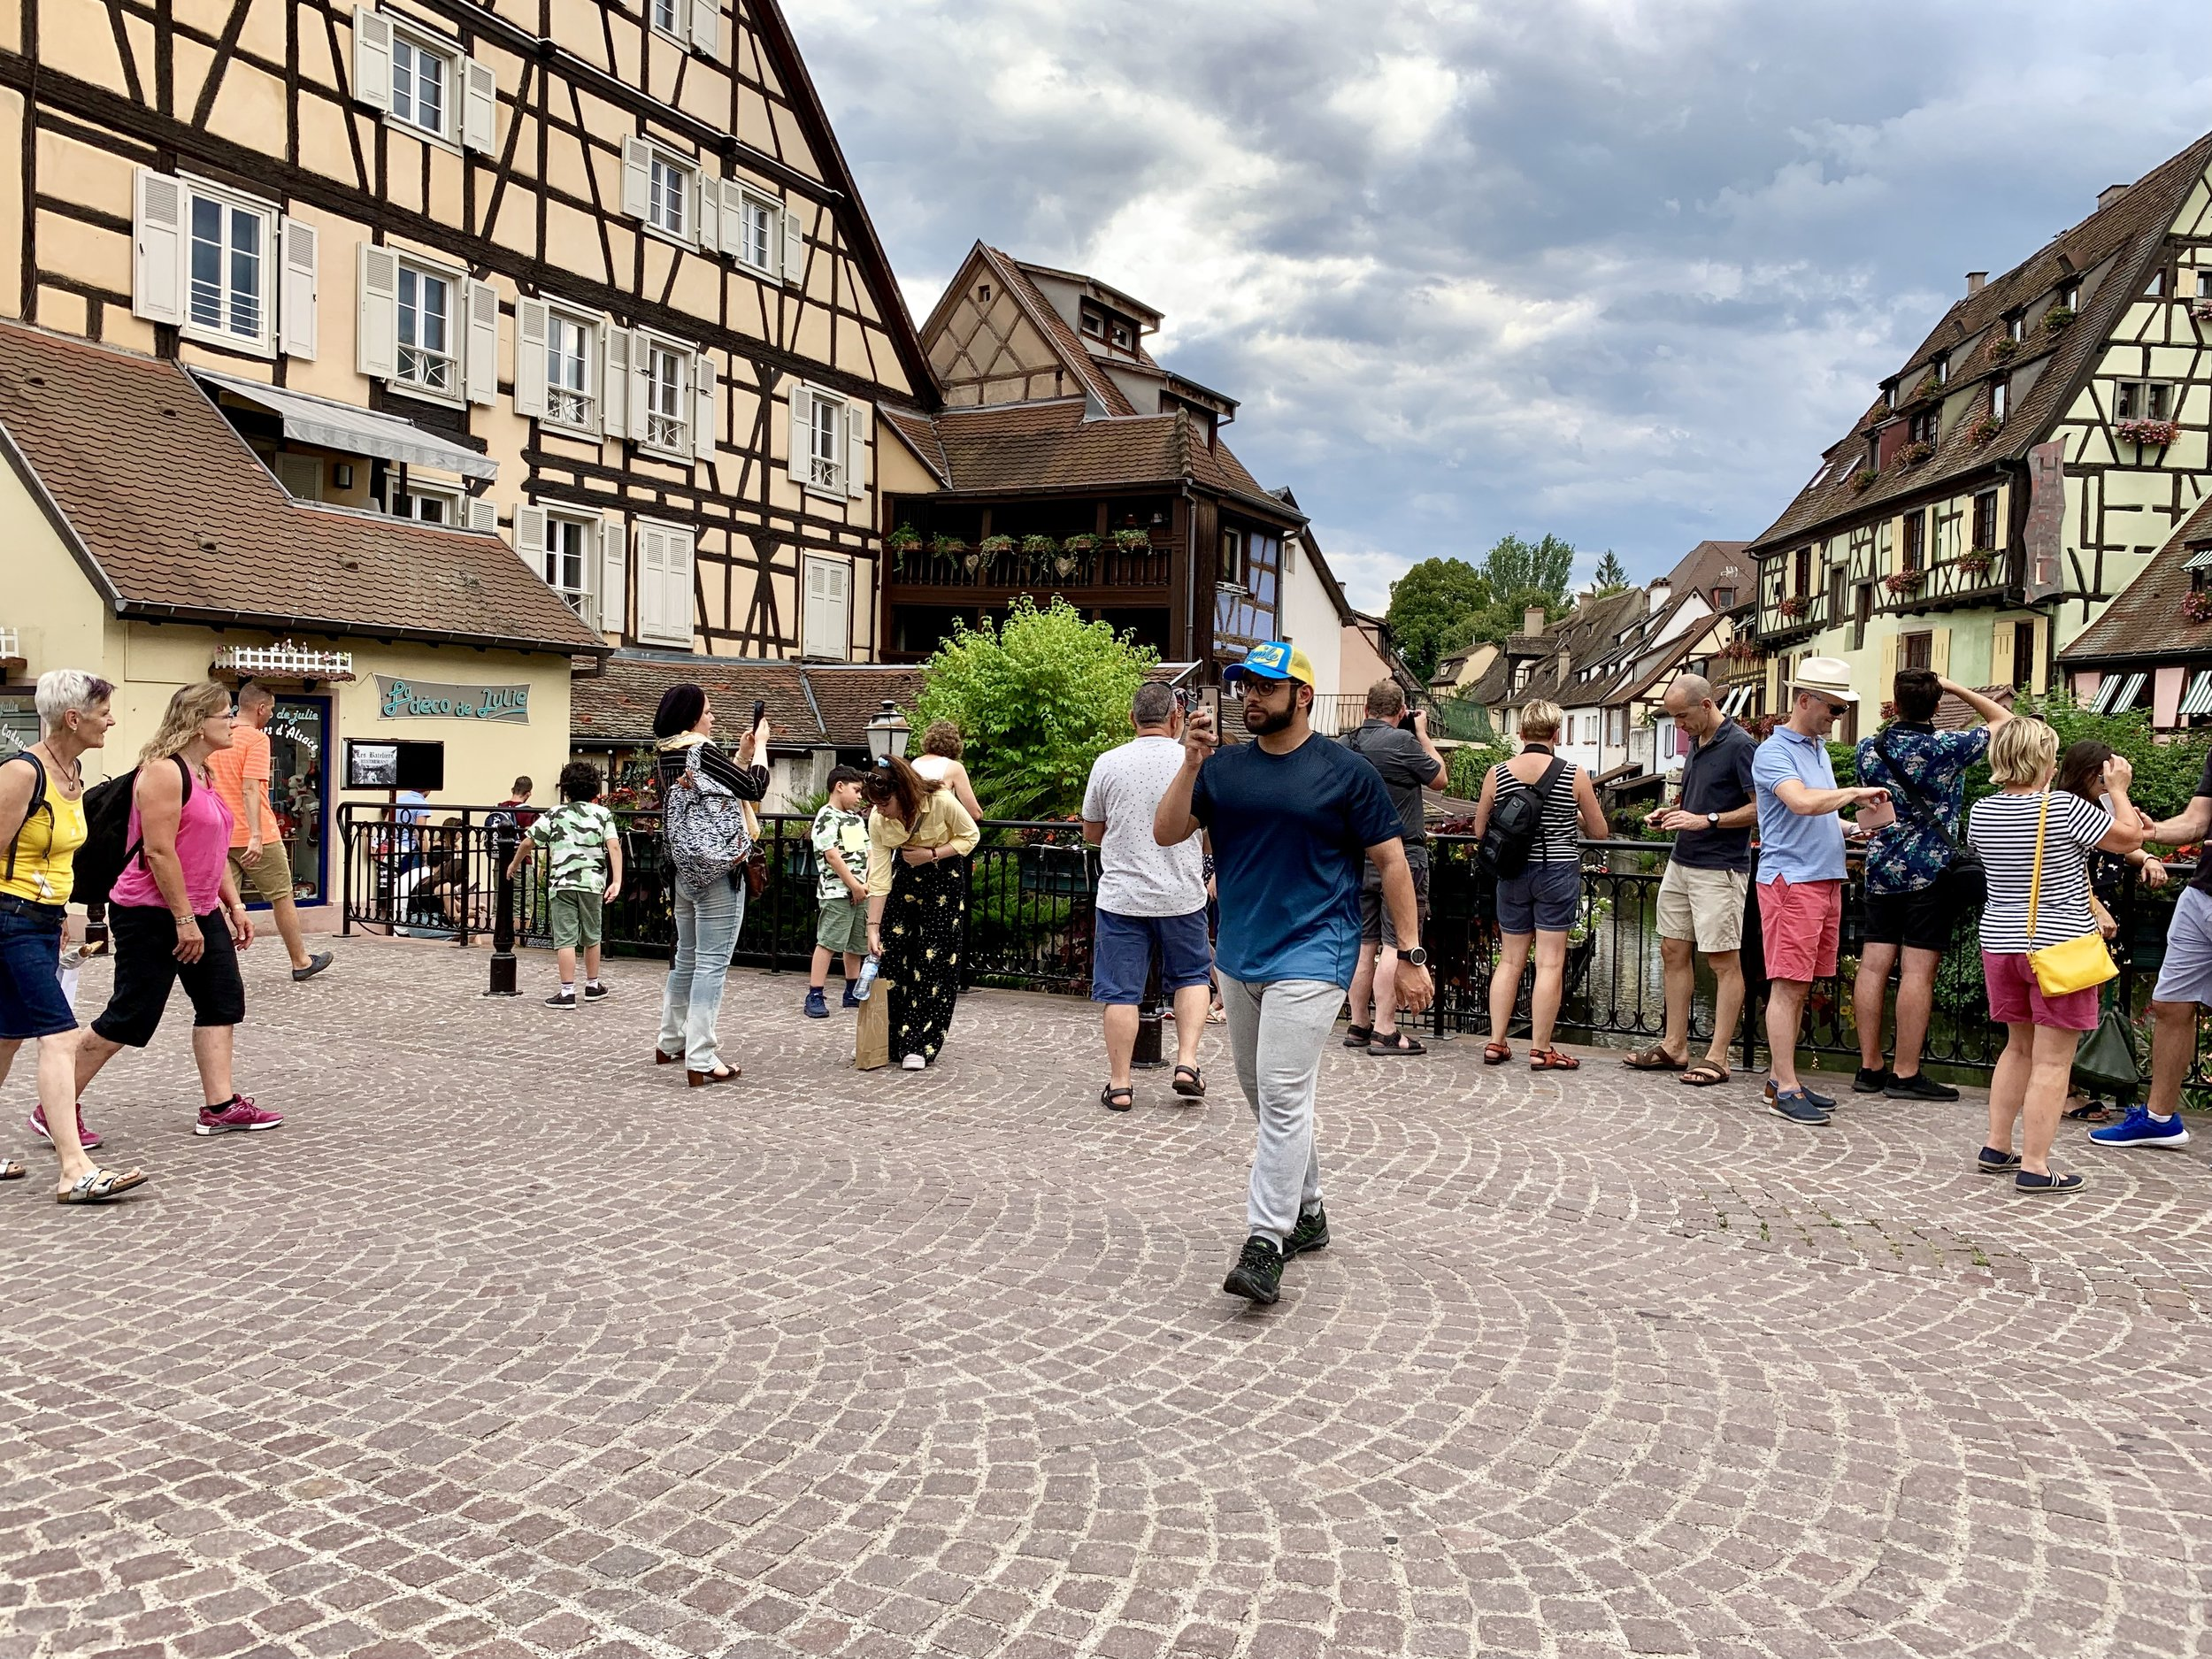 Tourists in Little Venice, Old Town Colmar. August 9, 2019.